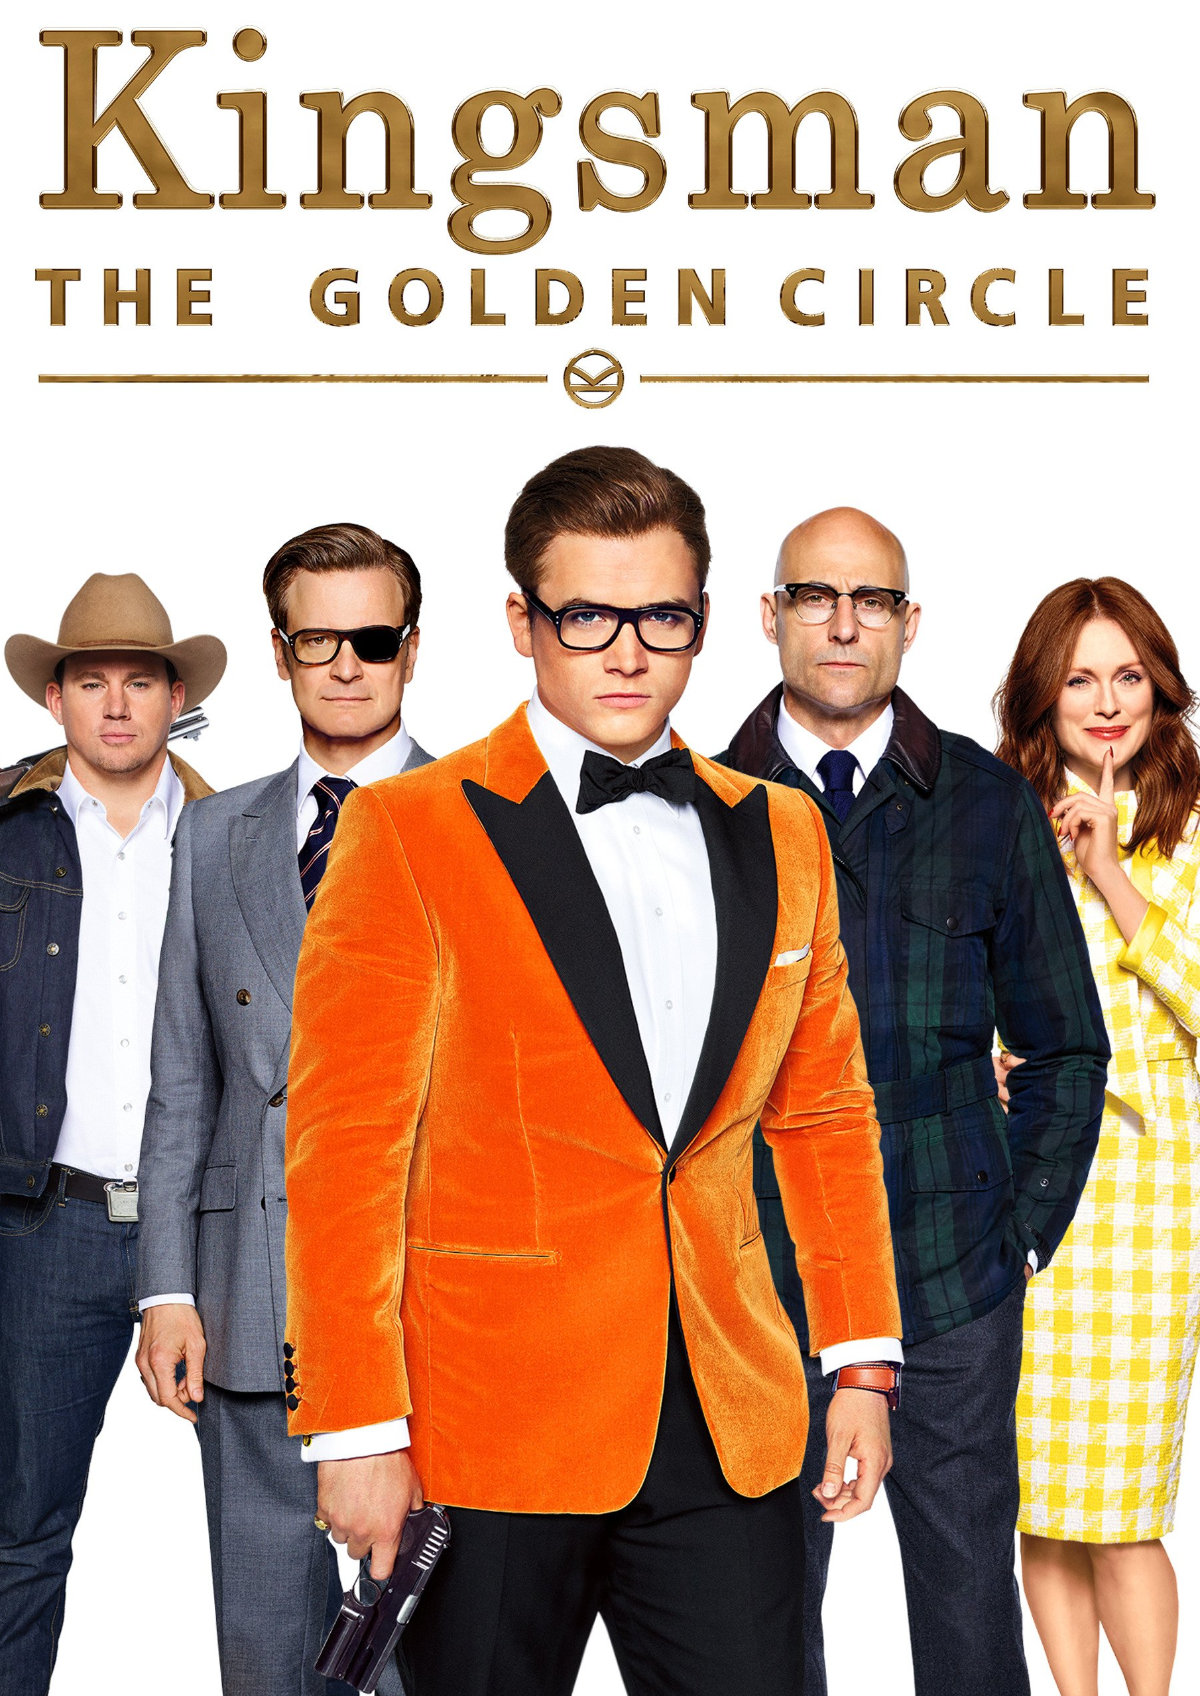 'Kingsman: The Golden Circle' movie poster